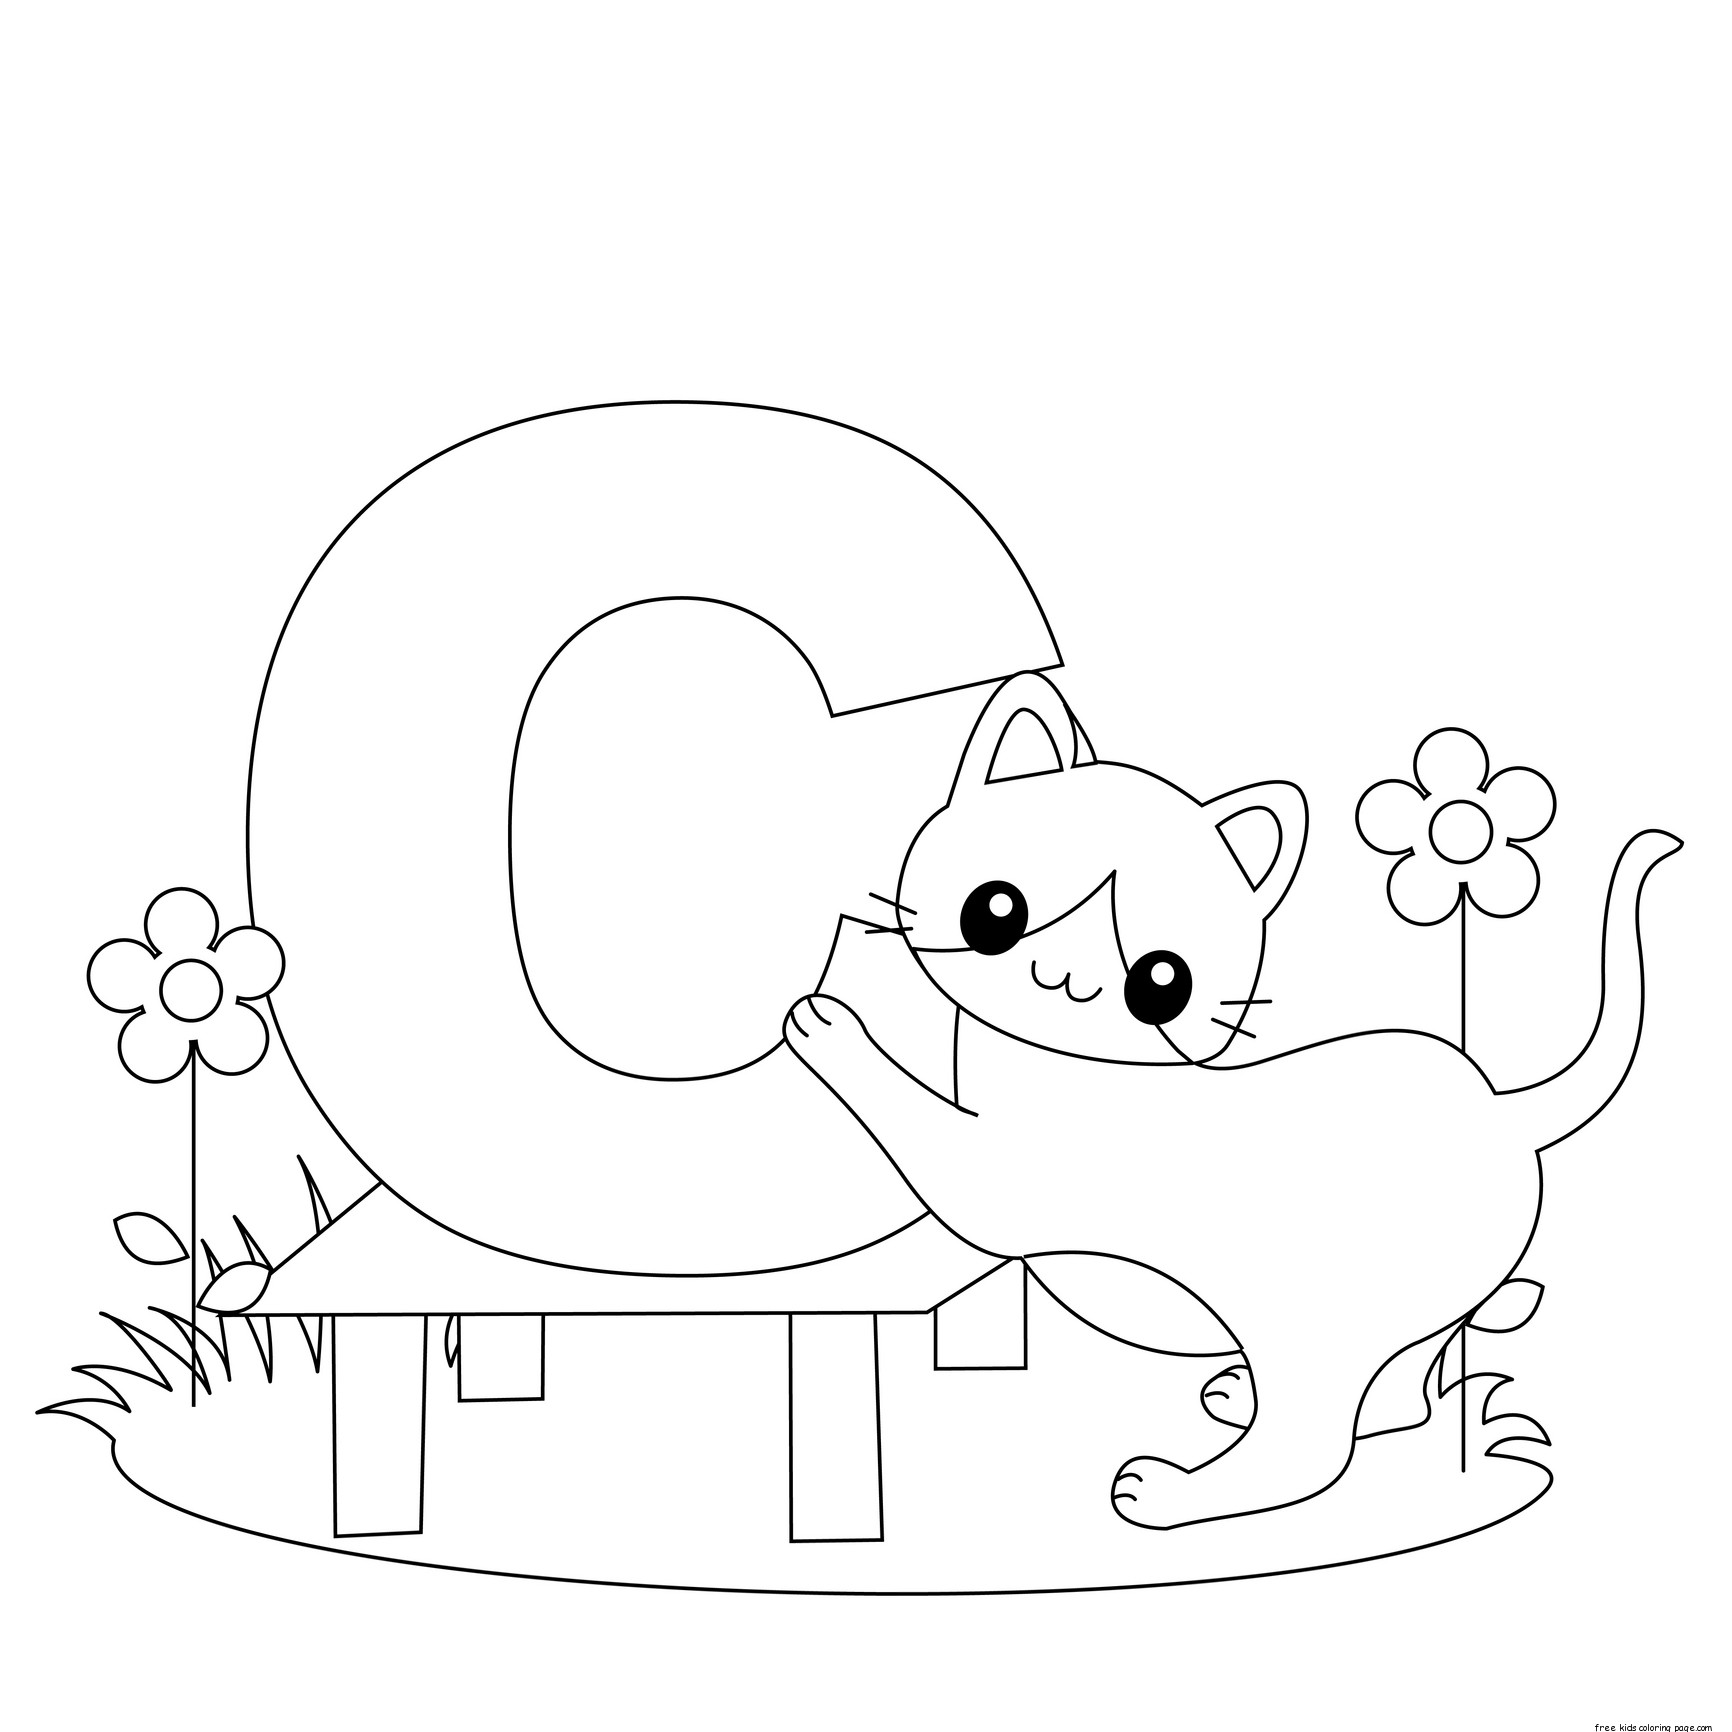 c coloring pages - photo #37